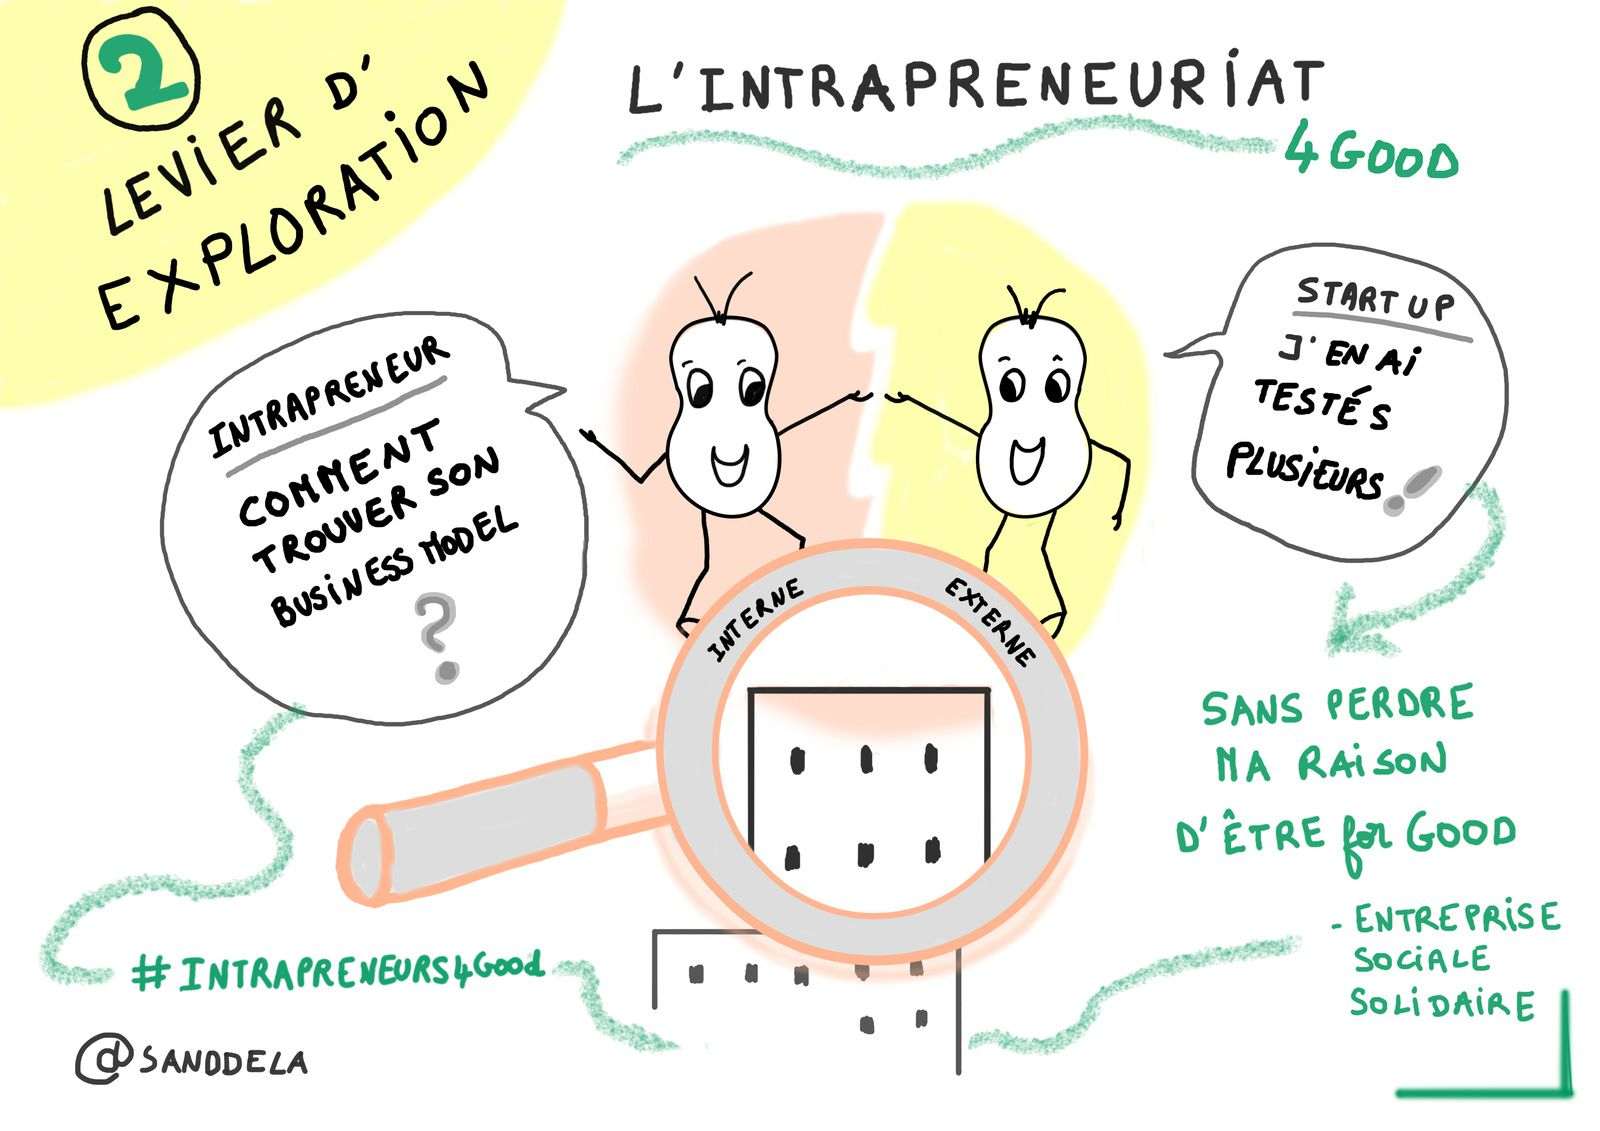 Intrapreneuriat-  intrapreneur for good - BNP Paribas - Sandrine Delage - #intrapreneurs4Good -SANDDELA People'sLab4Good - Business for good